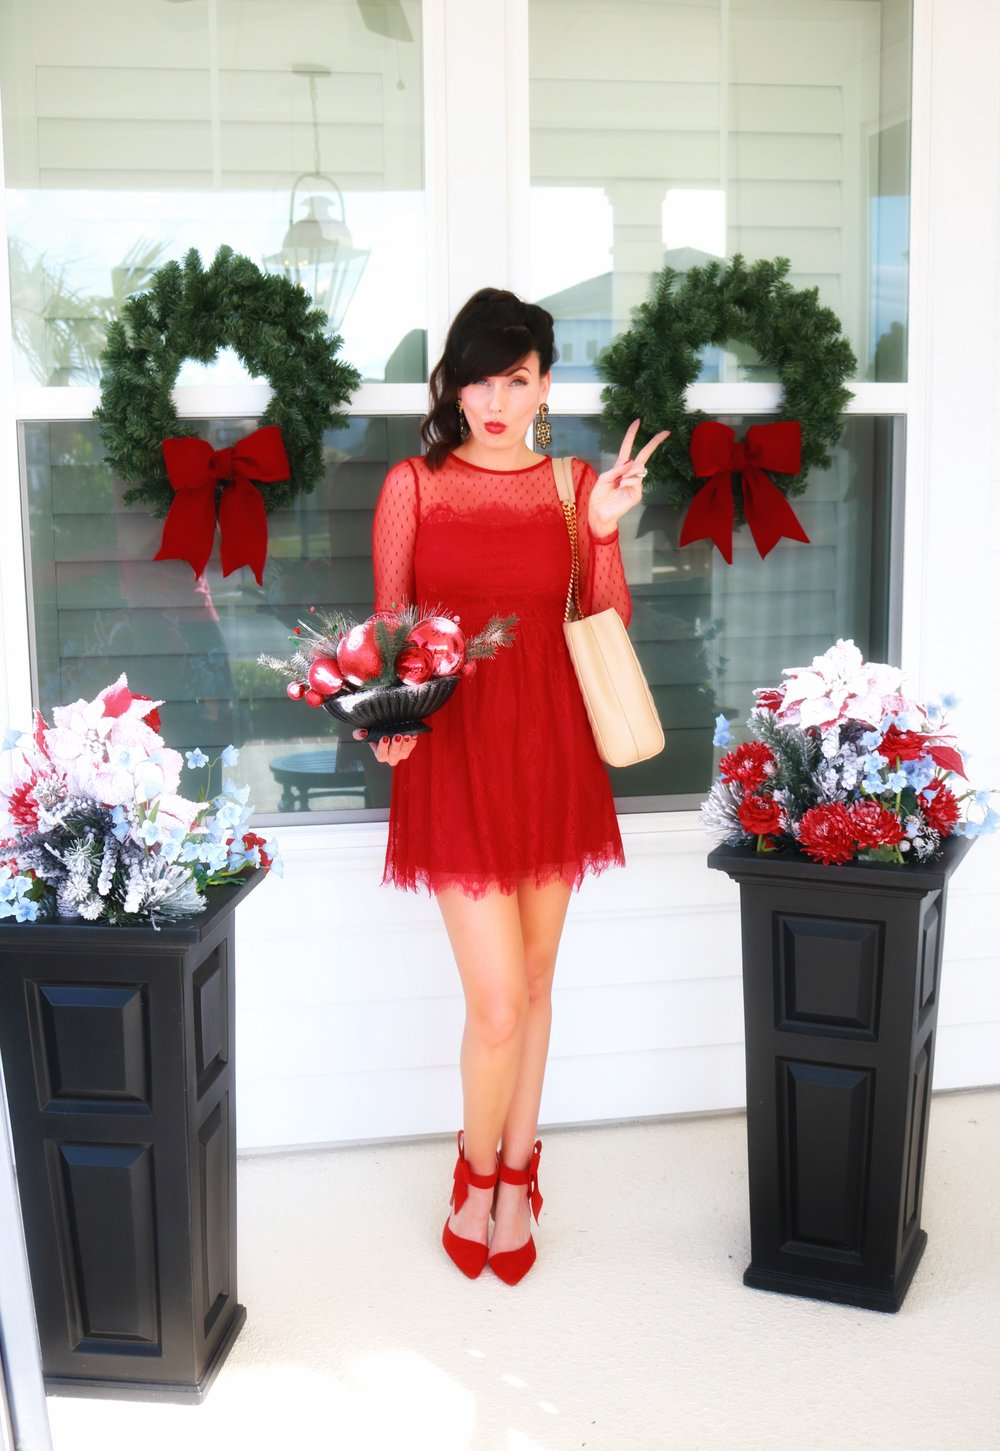 Holiday Red Christmas Dress.jpg